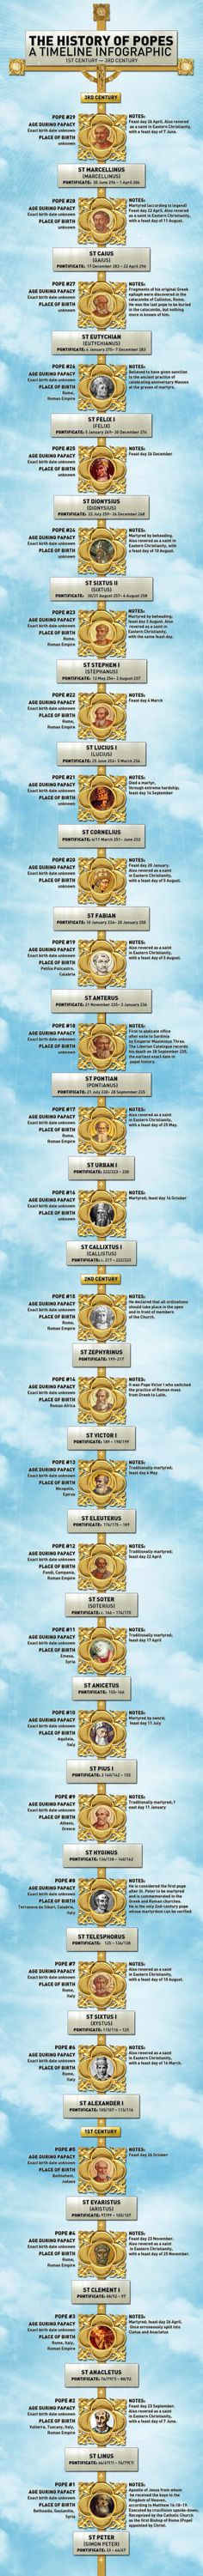 History of Popes (1st century - 3rd century) with St. Peter as the first pope.